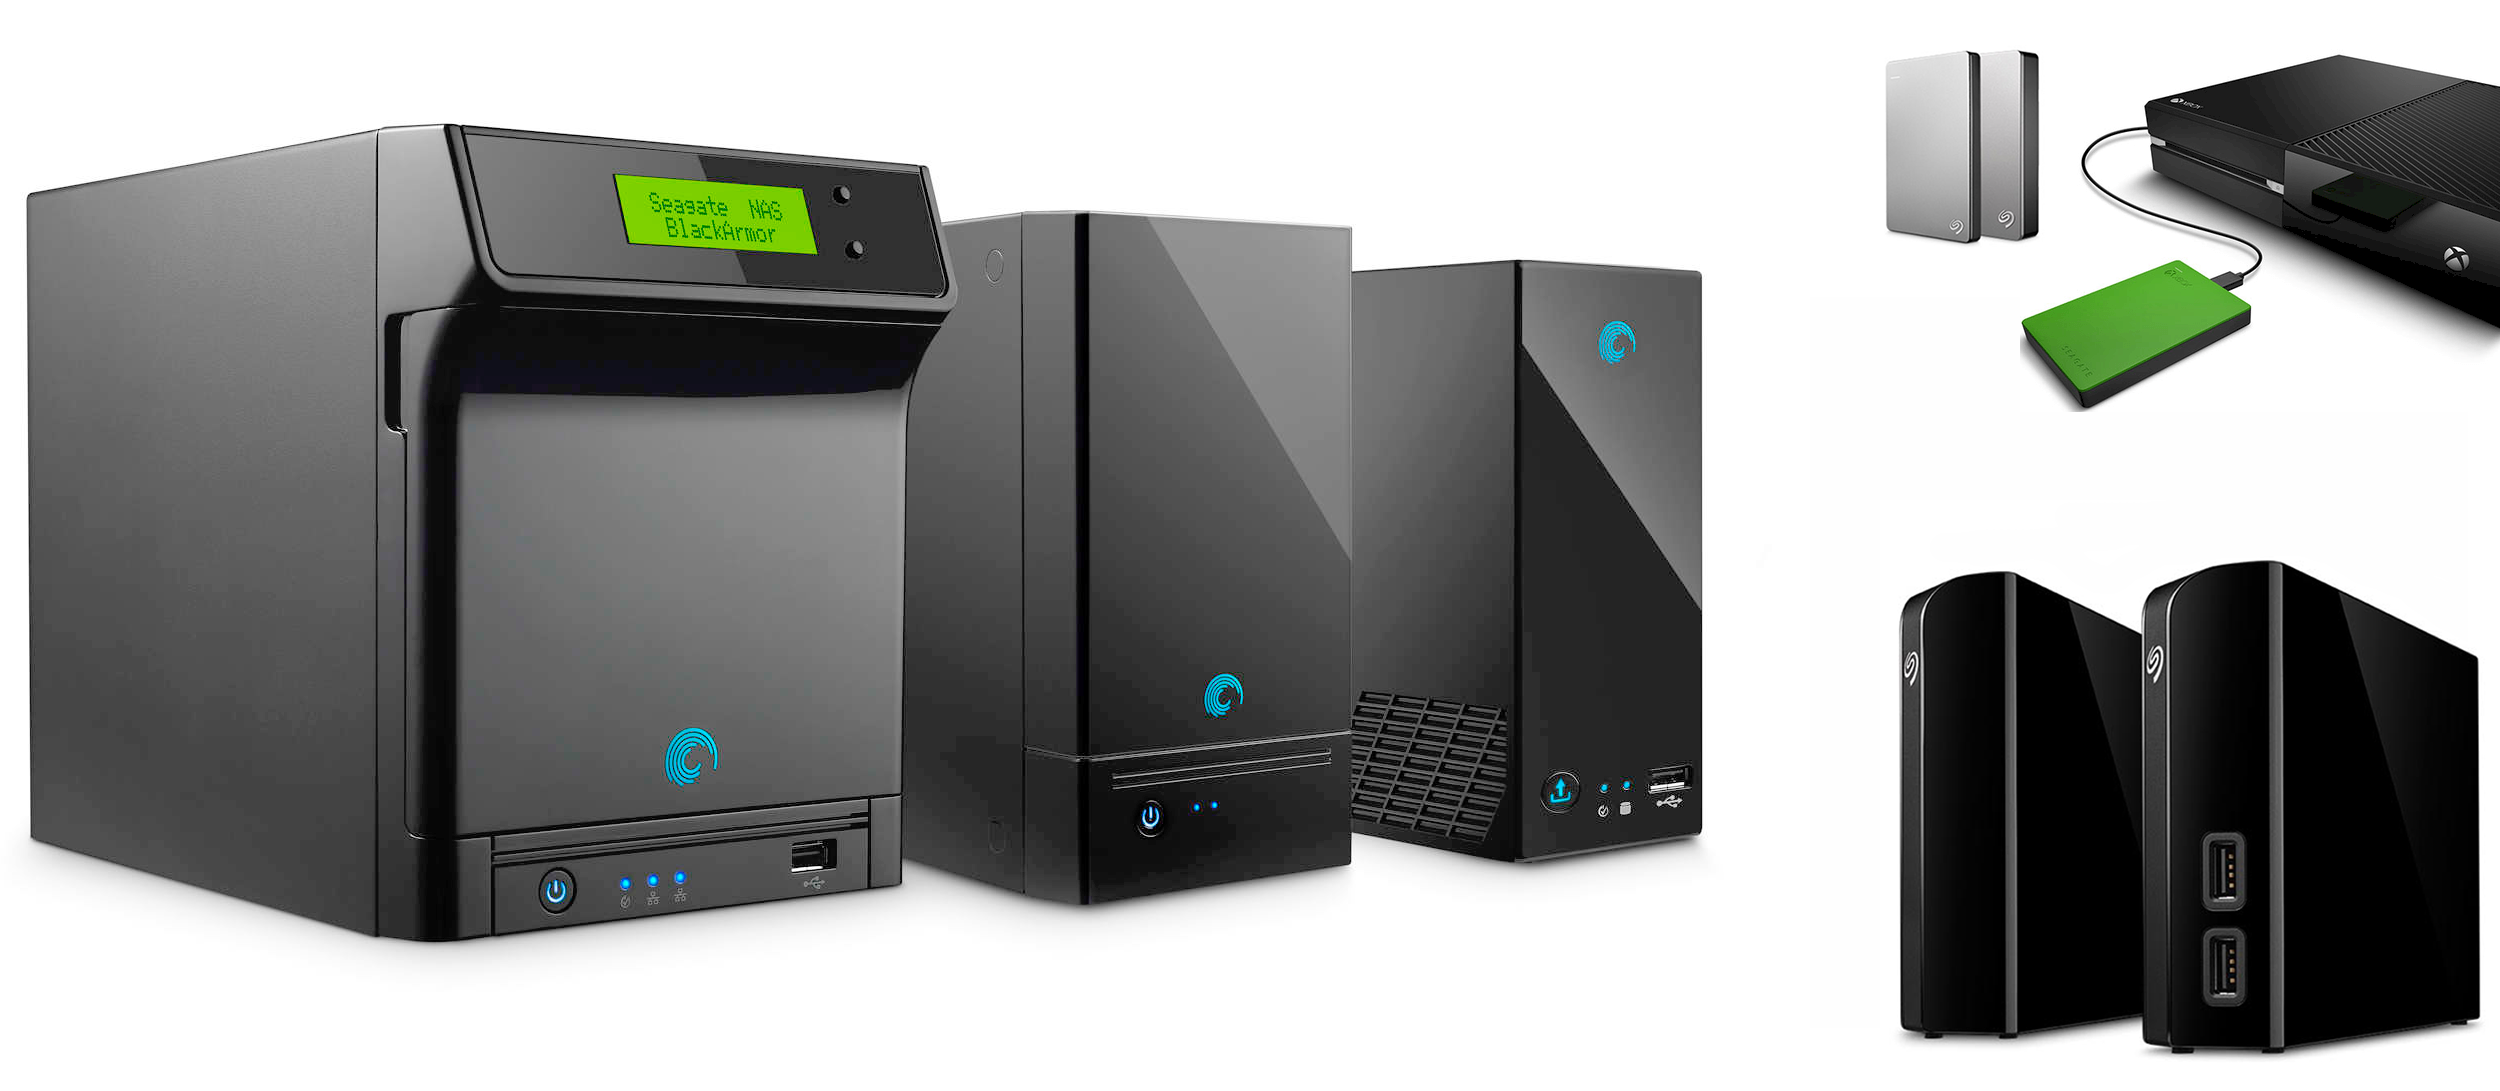 Price for data recovery from Seagate